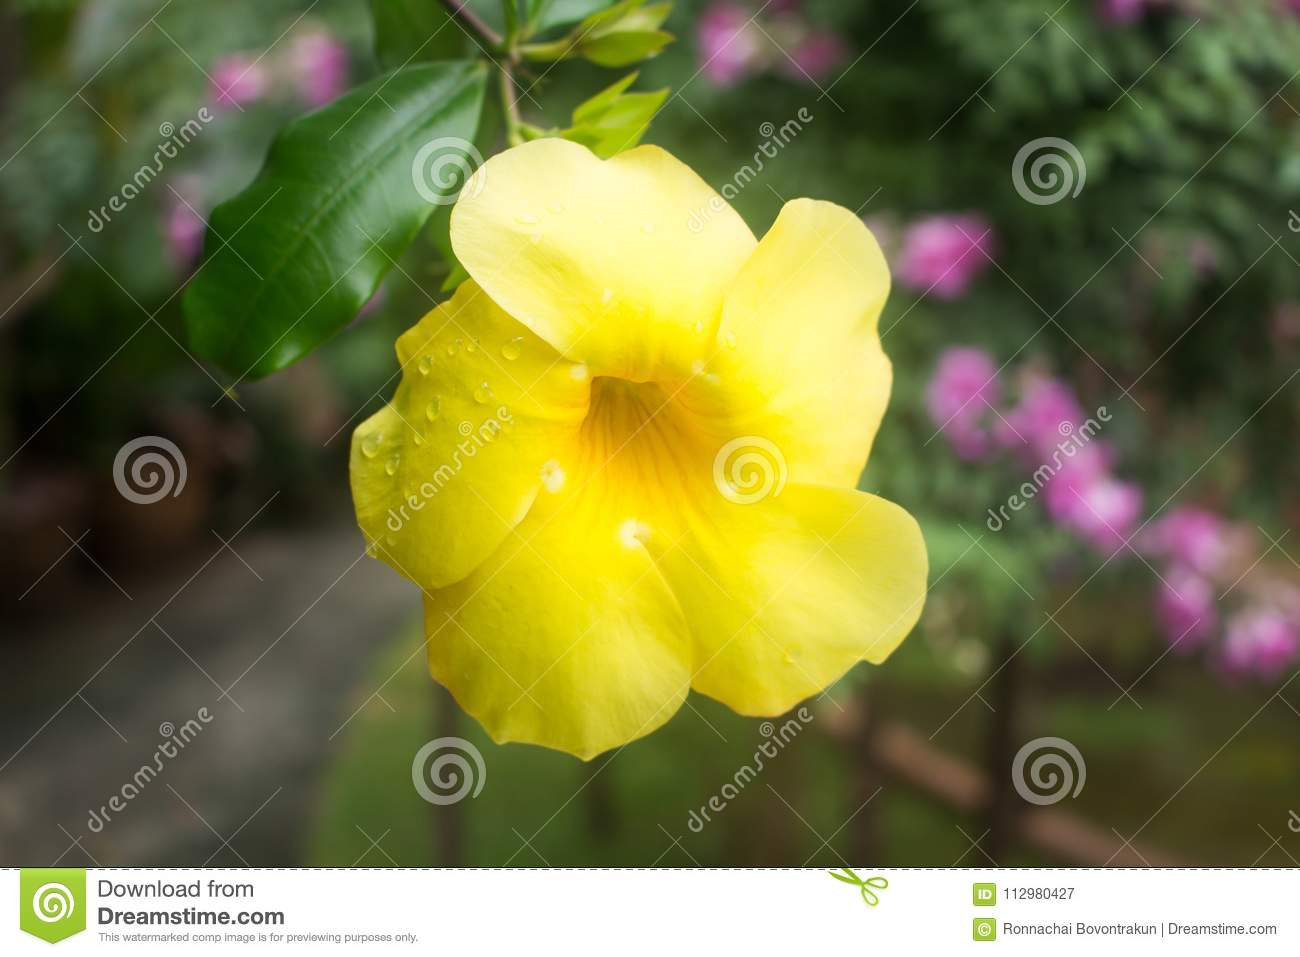 Yellow flower with raindrops on blur background